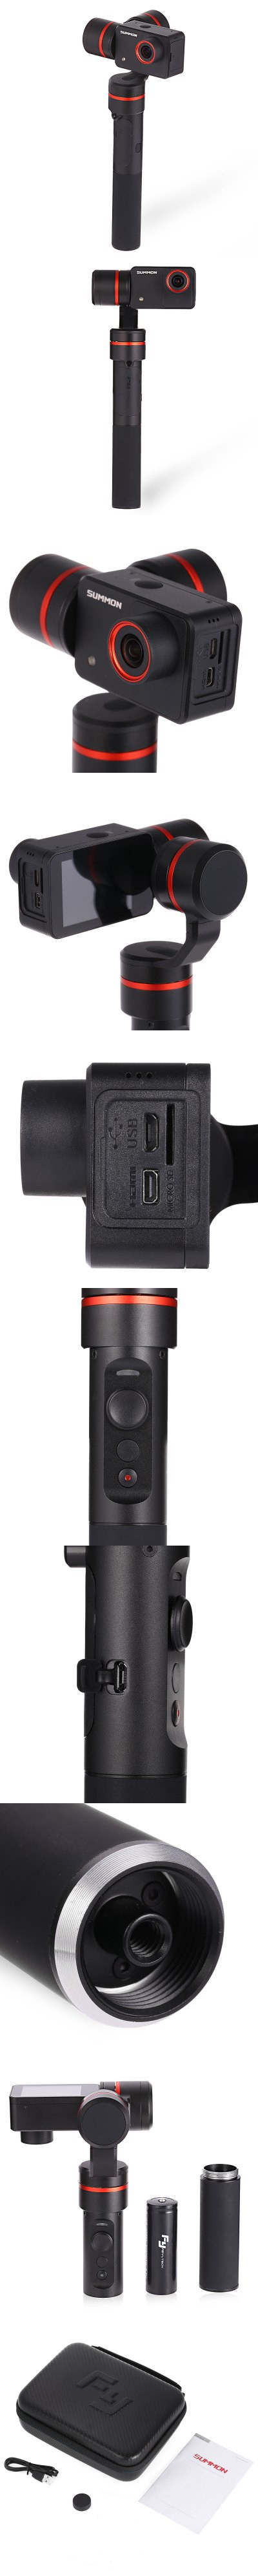 FEIYU SUMMON 3-axis Handheld Stabilizer 4K Action Camera 95 Degree FOV WiFi Connection